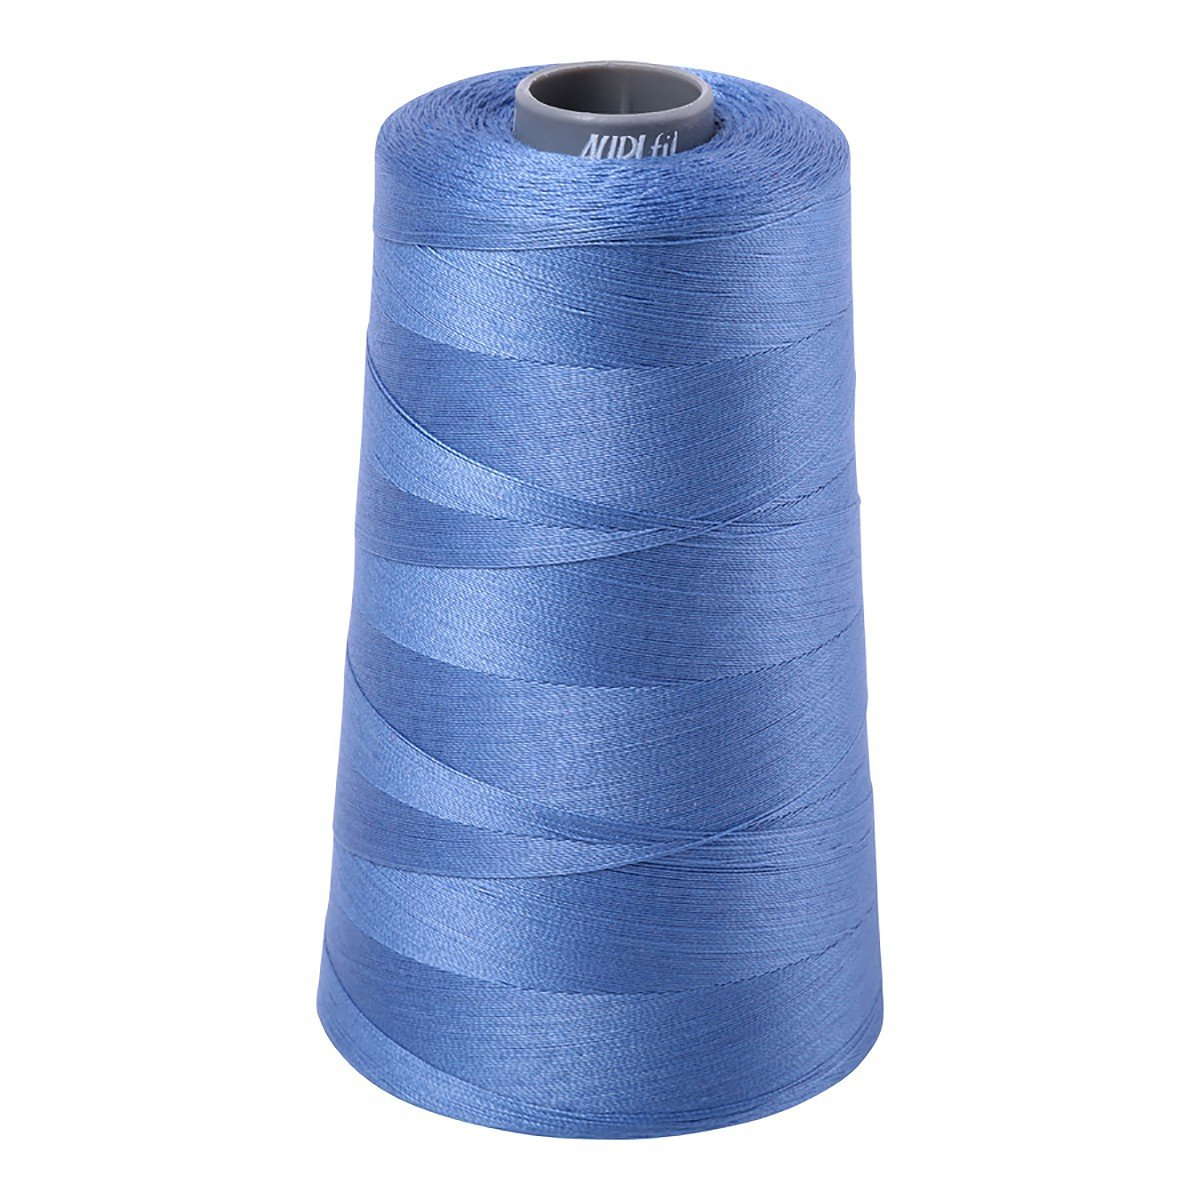 Mako (Cotton) Embroidery Thread 28wt 3609yds Light Blue Violet